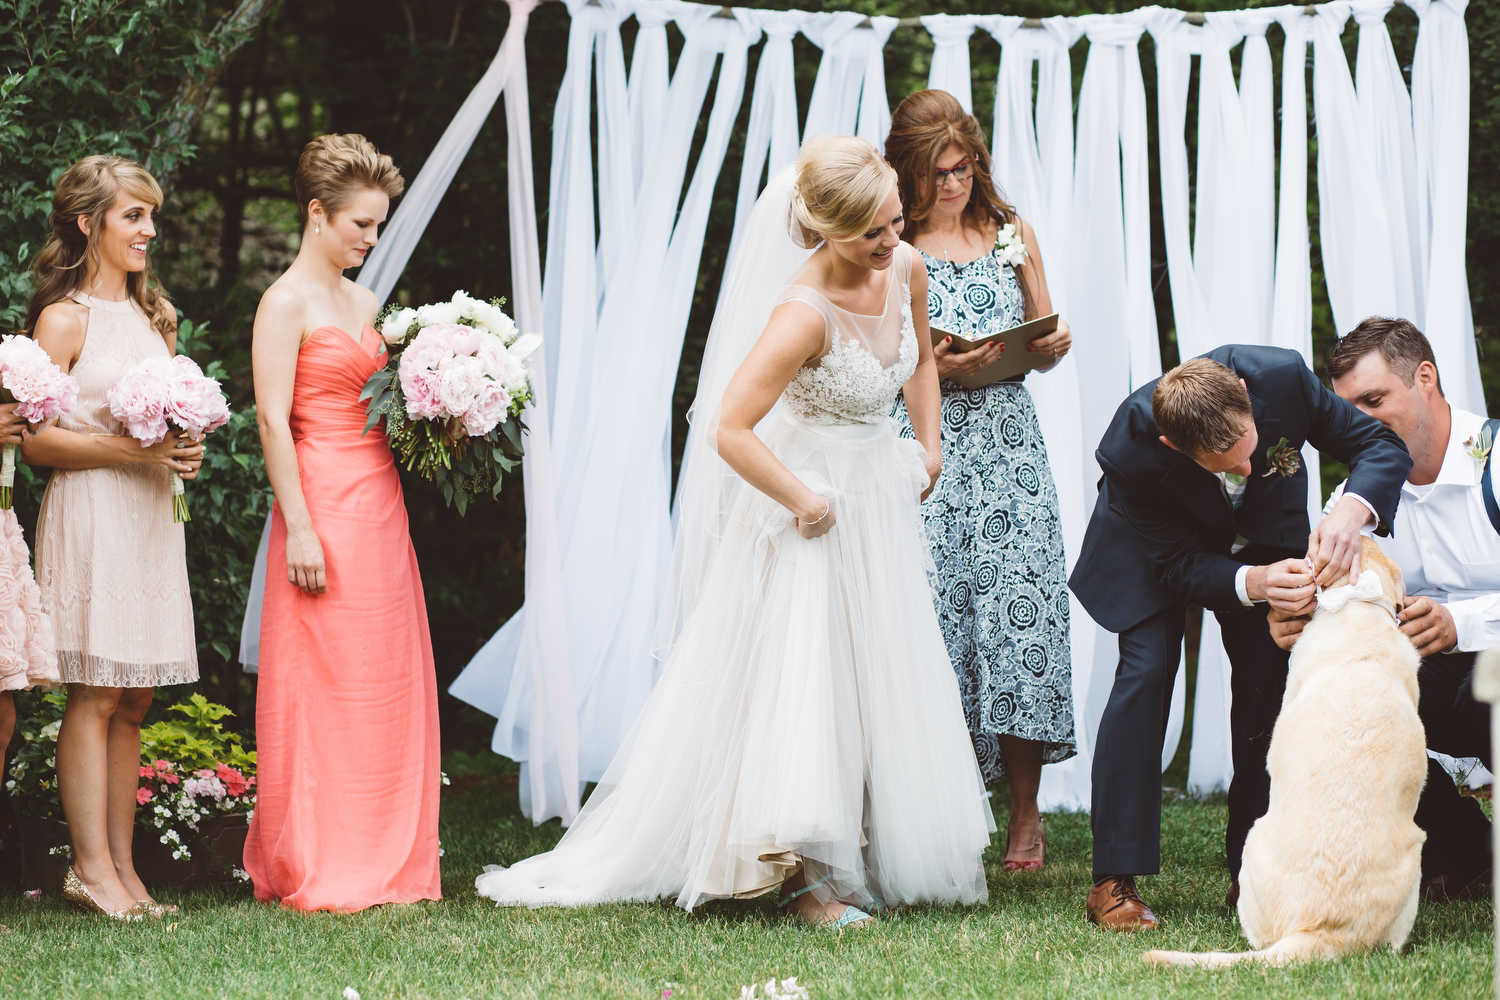 rustic backyard wedding westford massachusetts u2014 leona campbell